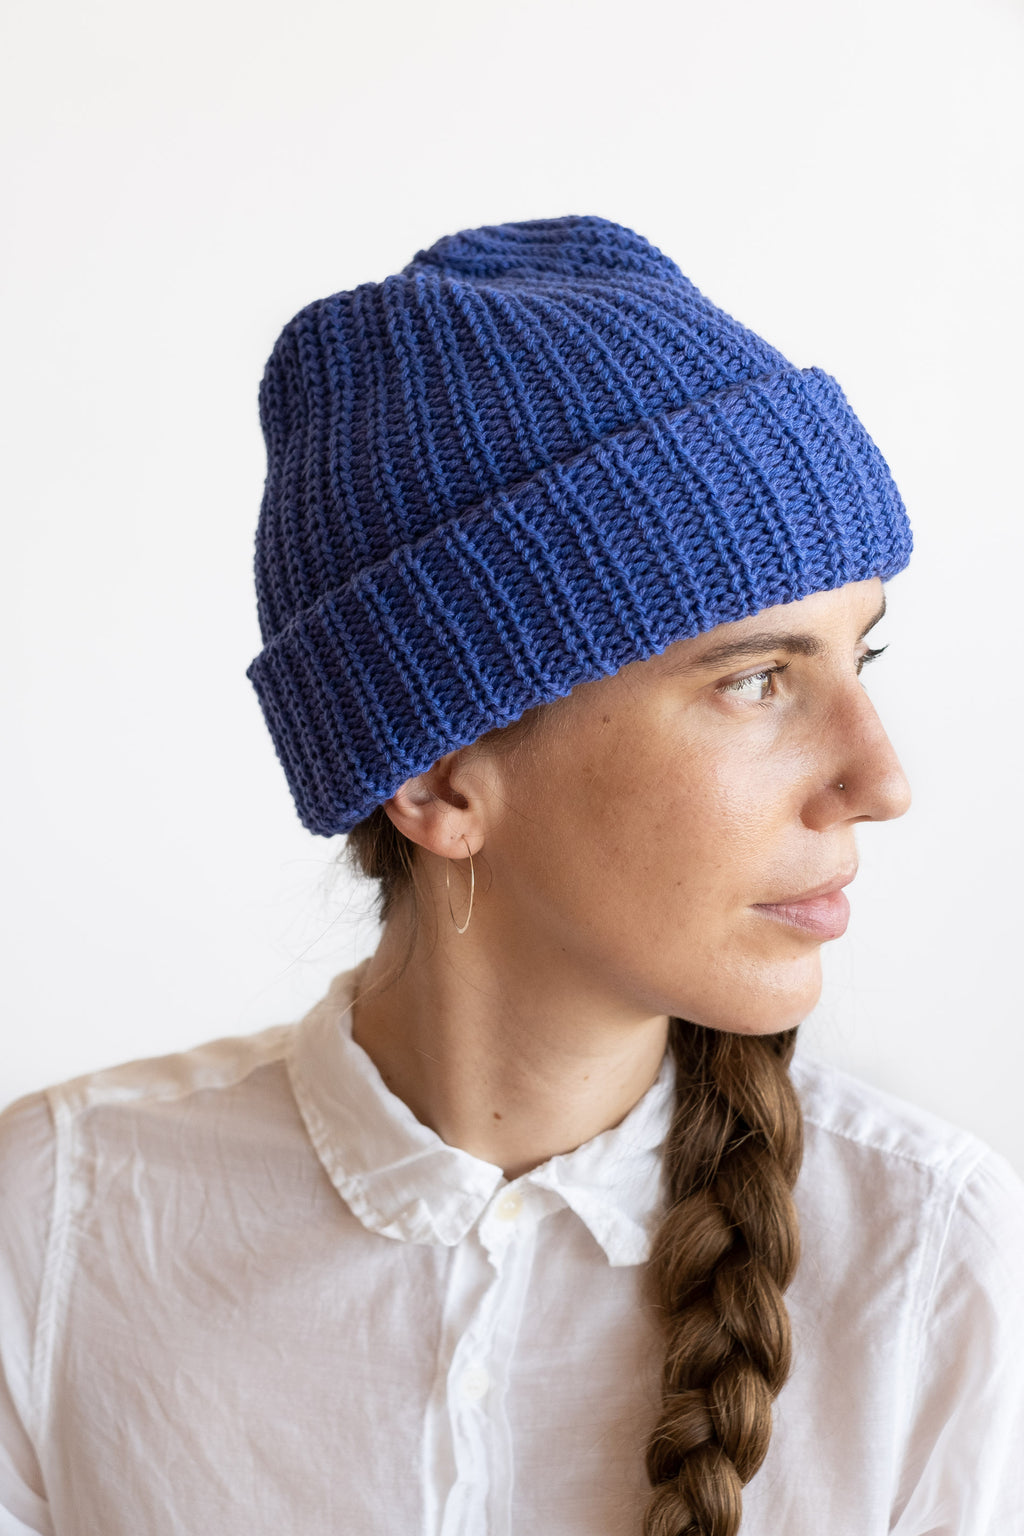 KNIT HAT IN LAPIS